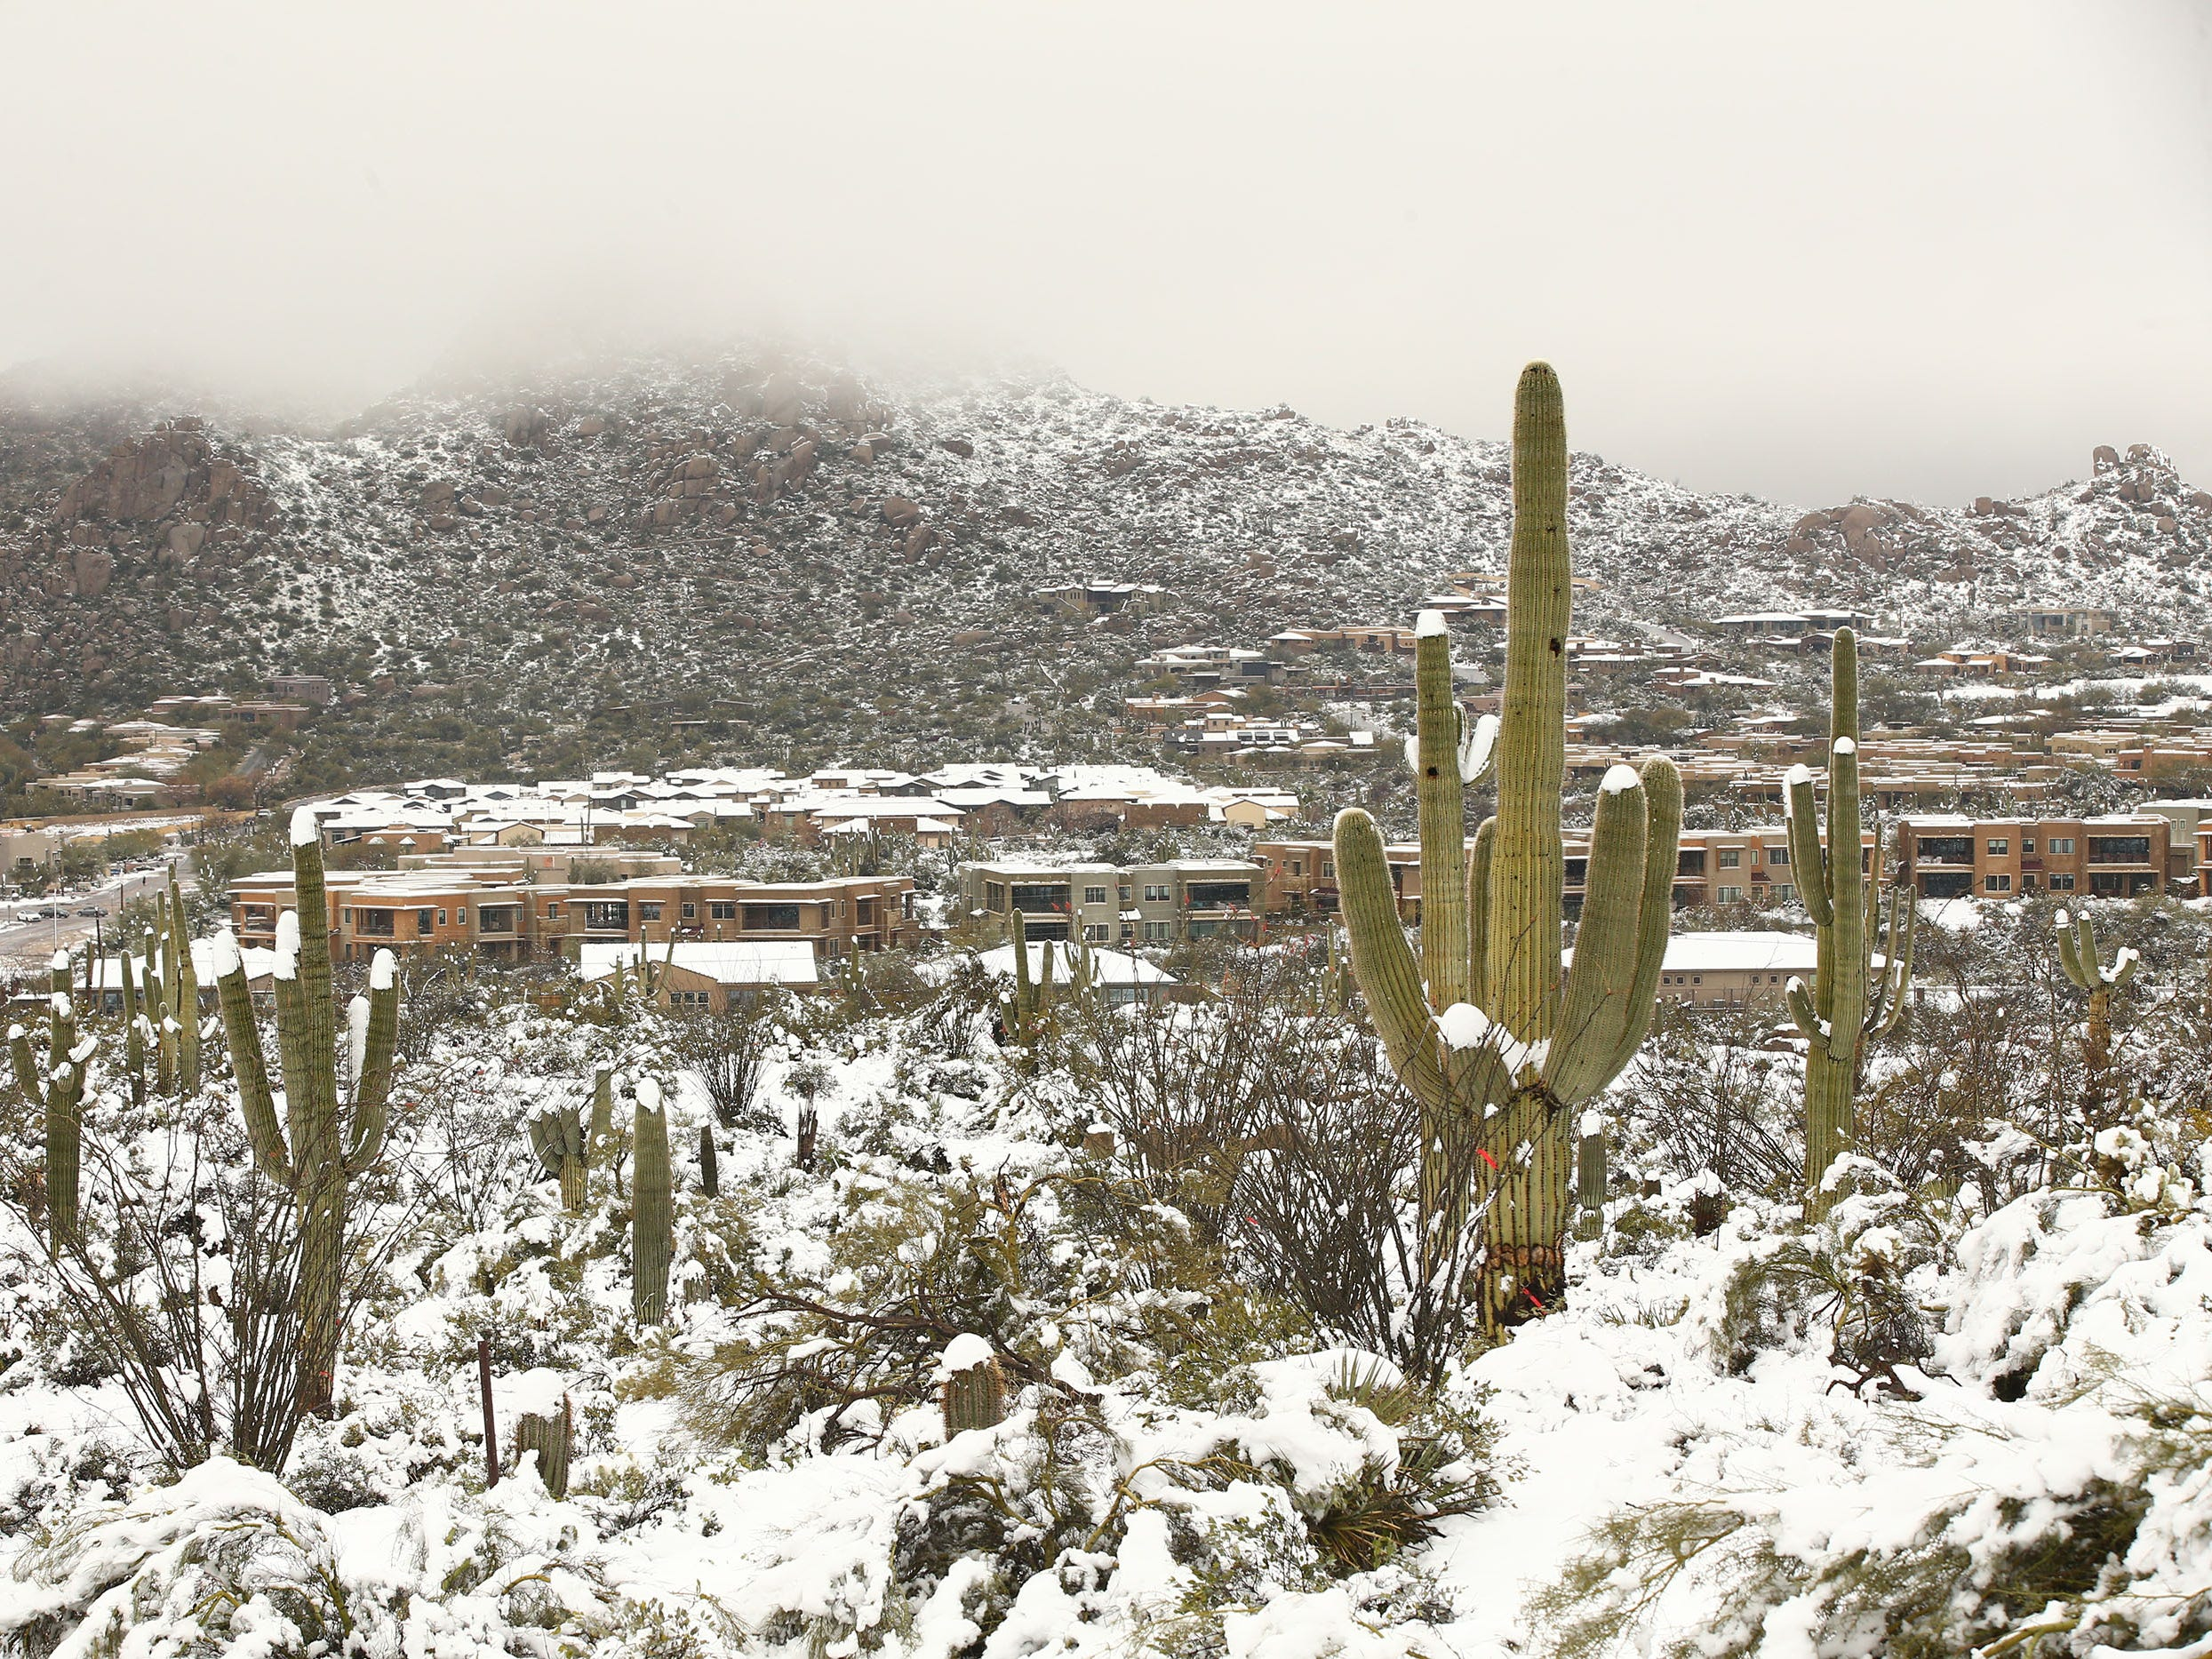 A powerful winter storm brought 6 inches of snow to the area around Pinnacle Peak on Feb. 22, 2019, in Scottsdale.